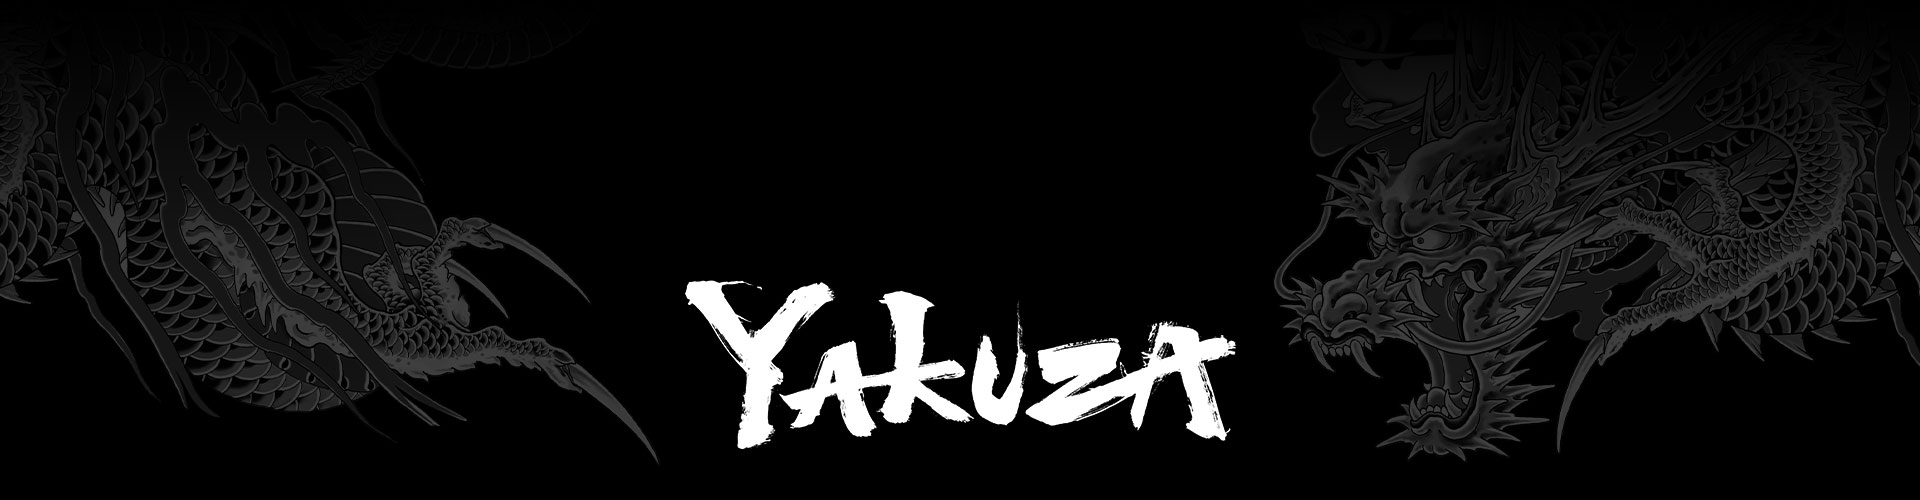 Yakuza franchise logo with a stylised grey dragon tattoo background.